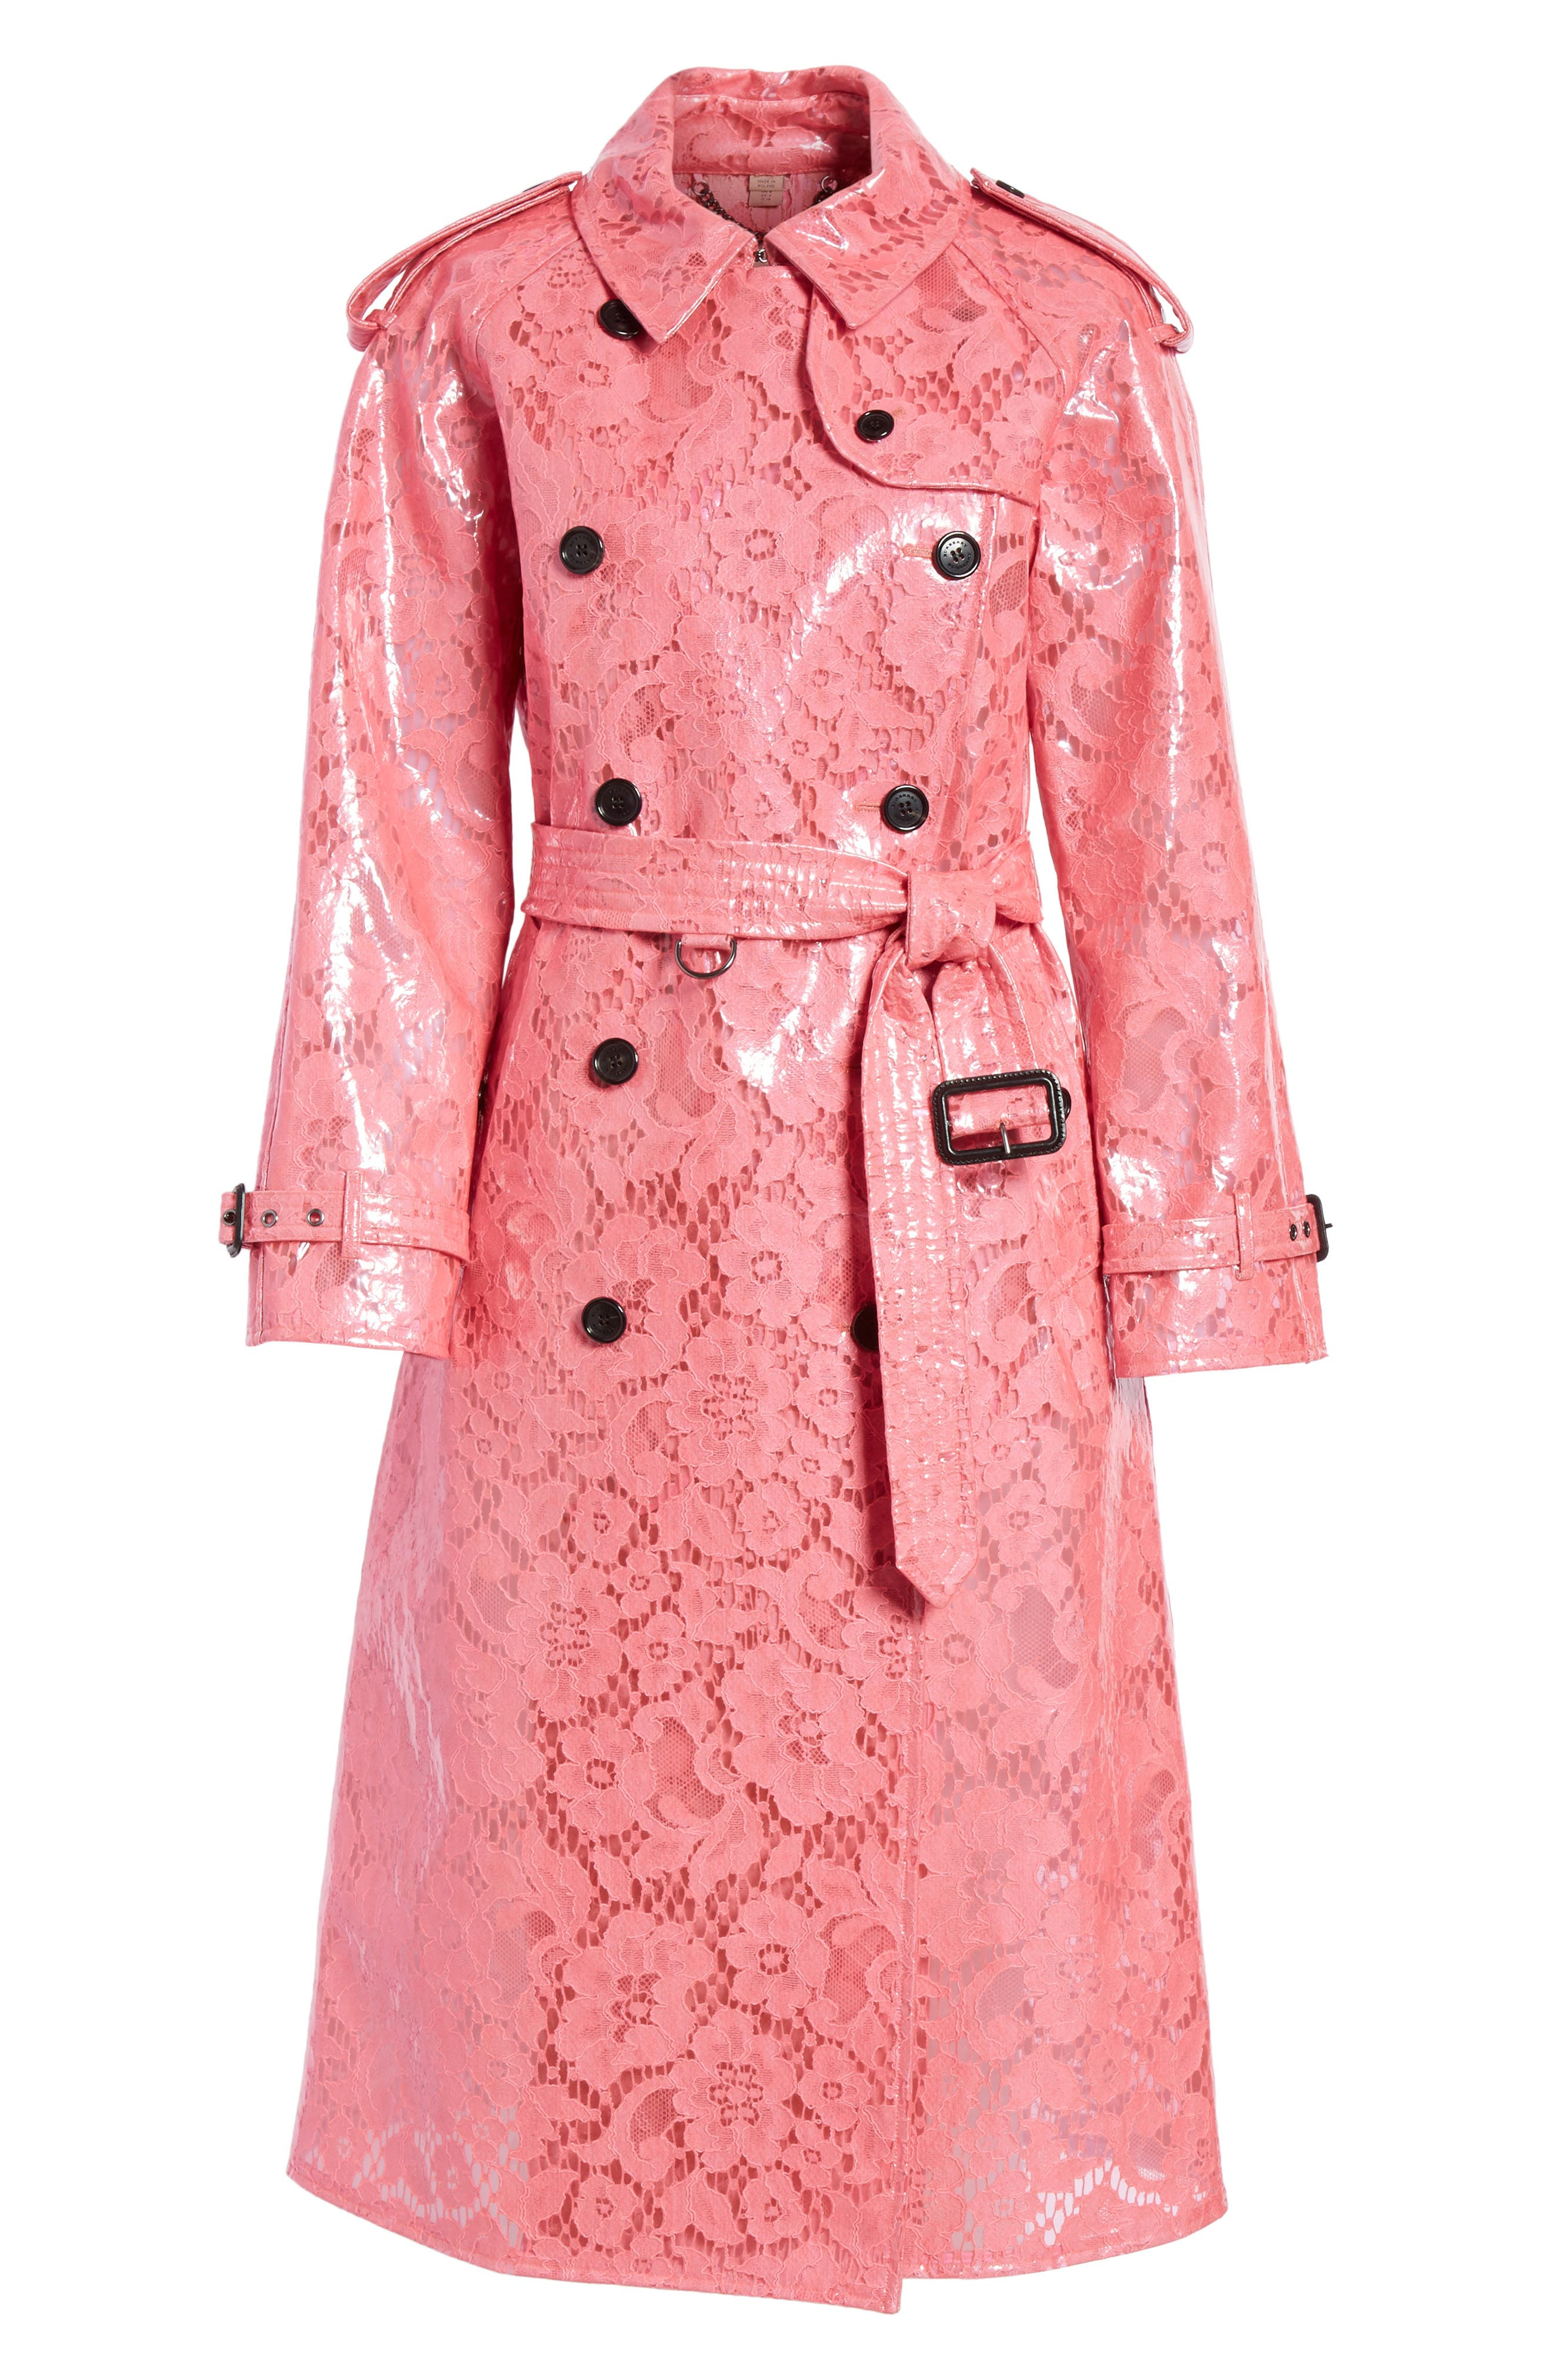 Eastheath Coated Lace Trench Coat,                             Alternate thumbnail 6, color,                             Bright Pink